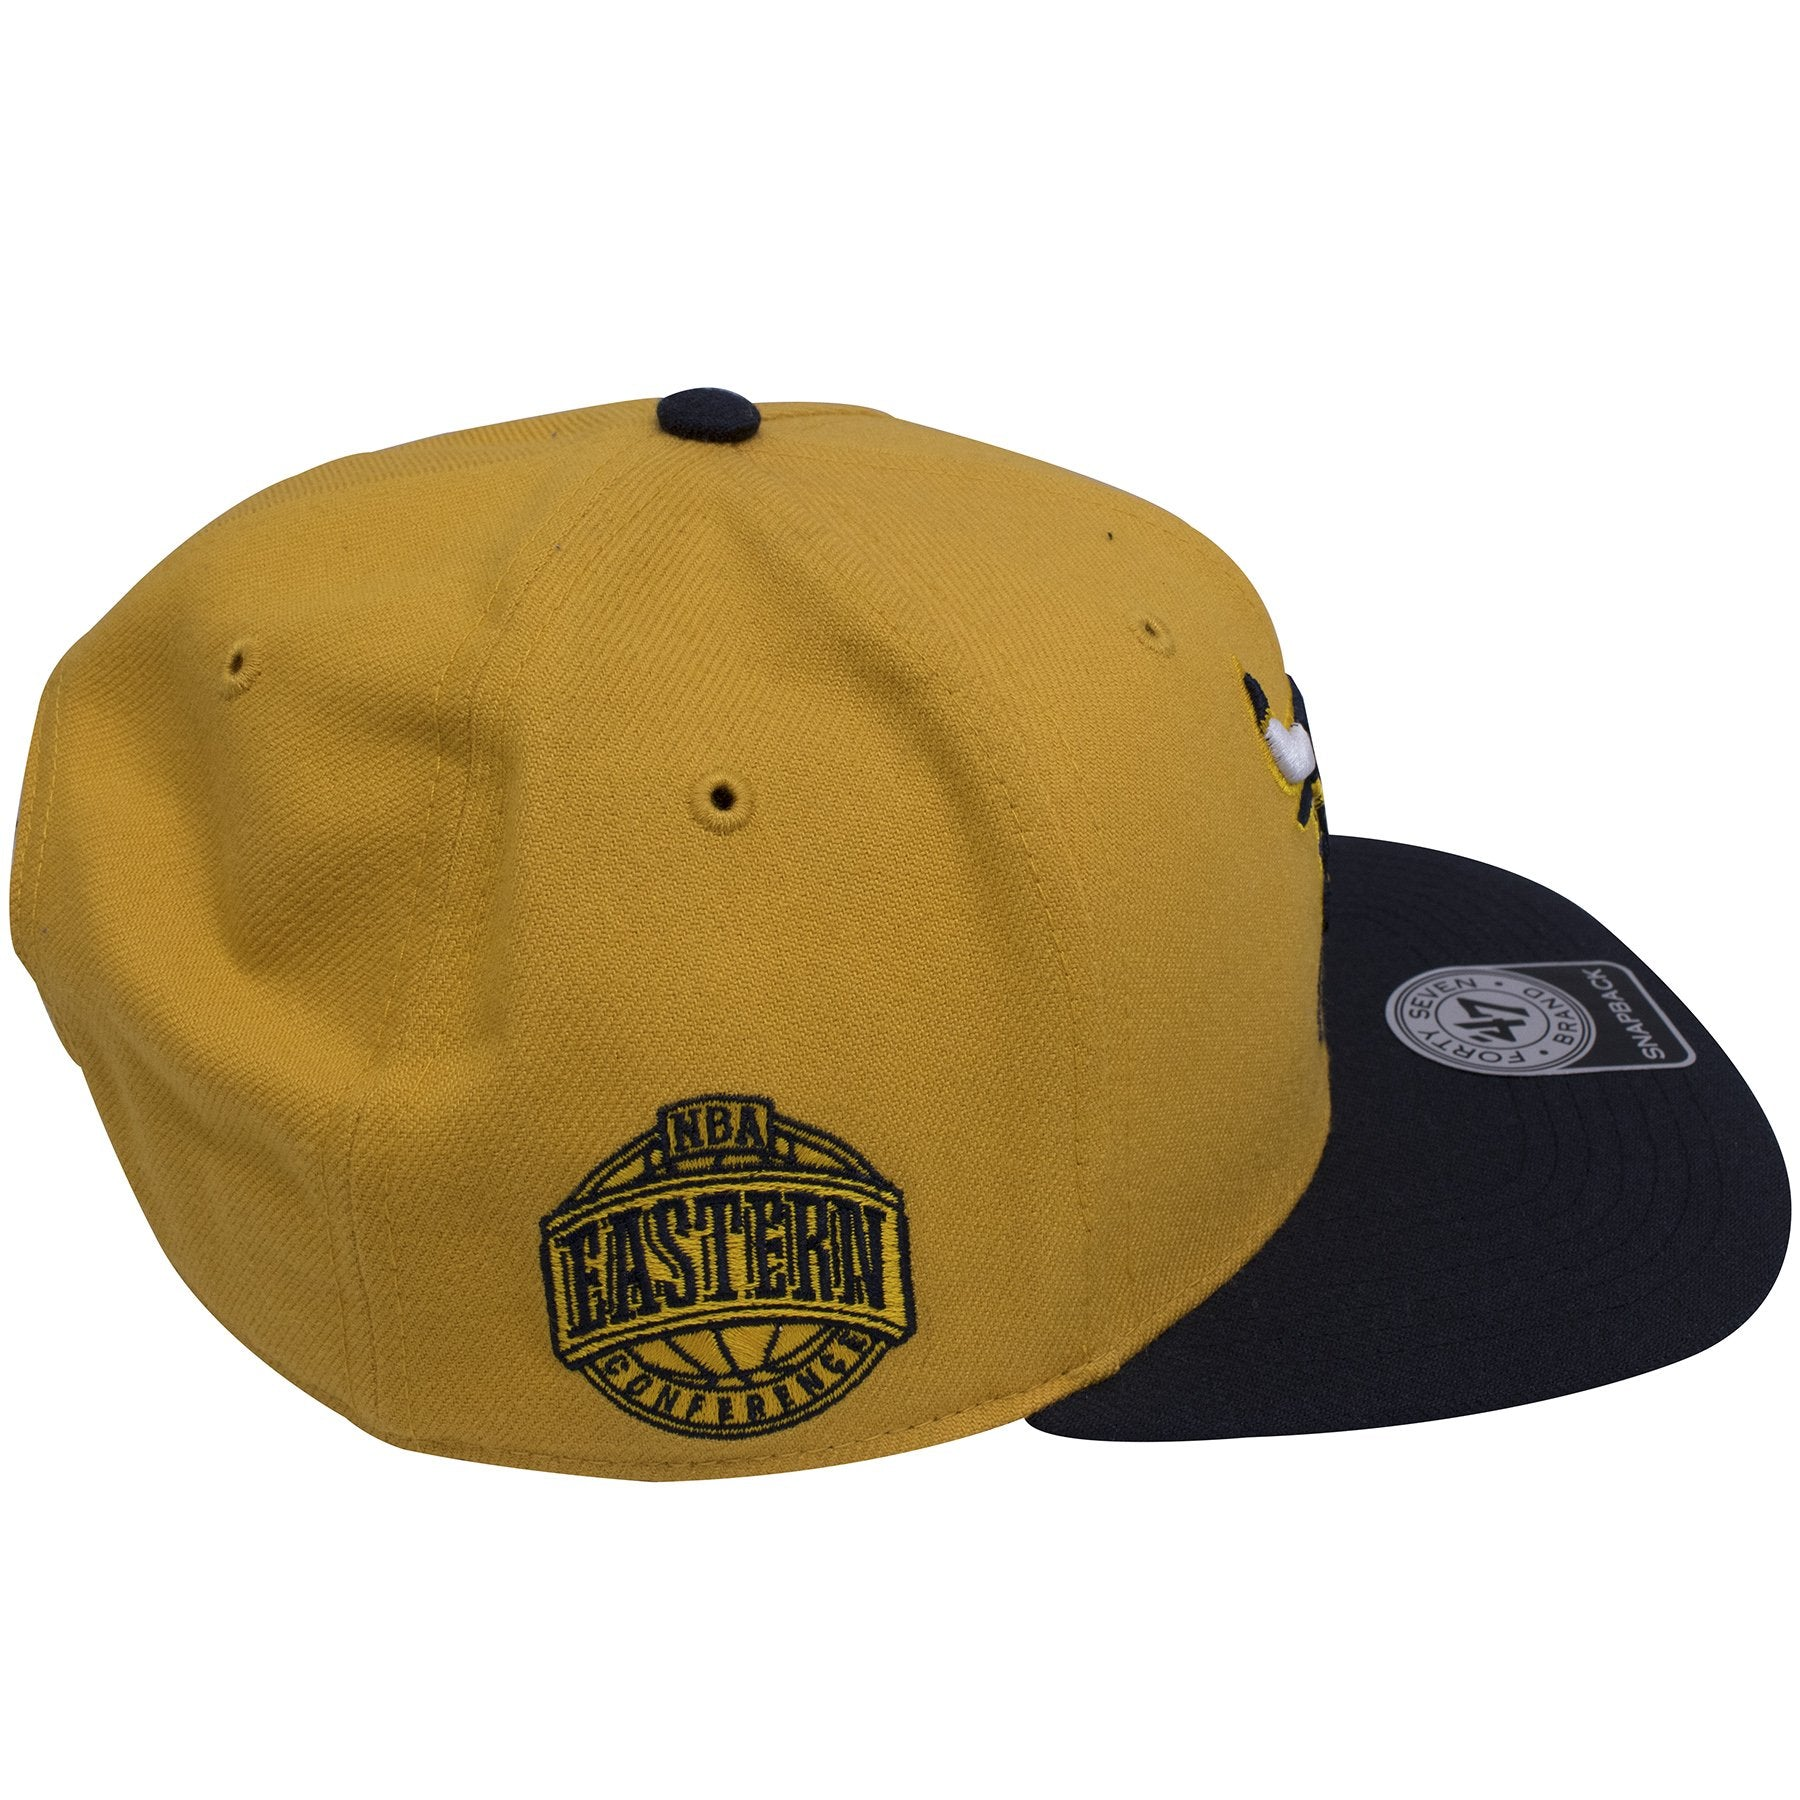 4813bbd590a ... Chicago Bulls Retro Air Jordan 4 Dunk From Above Yellow on Navy Sneaker  Matching Snapback Hat ...